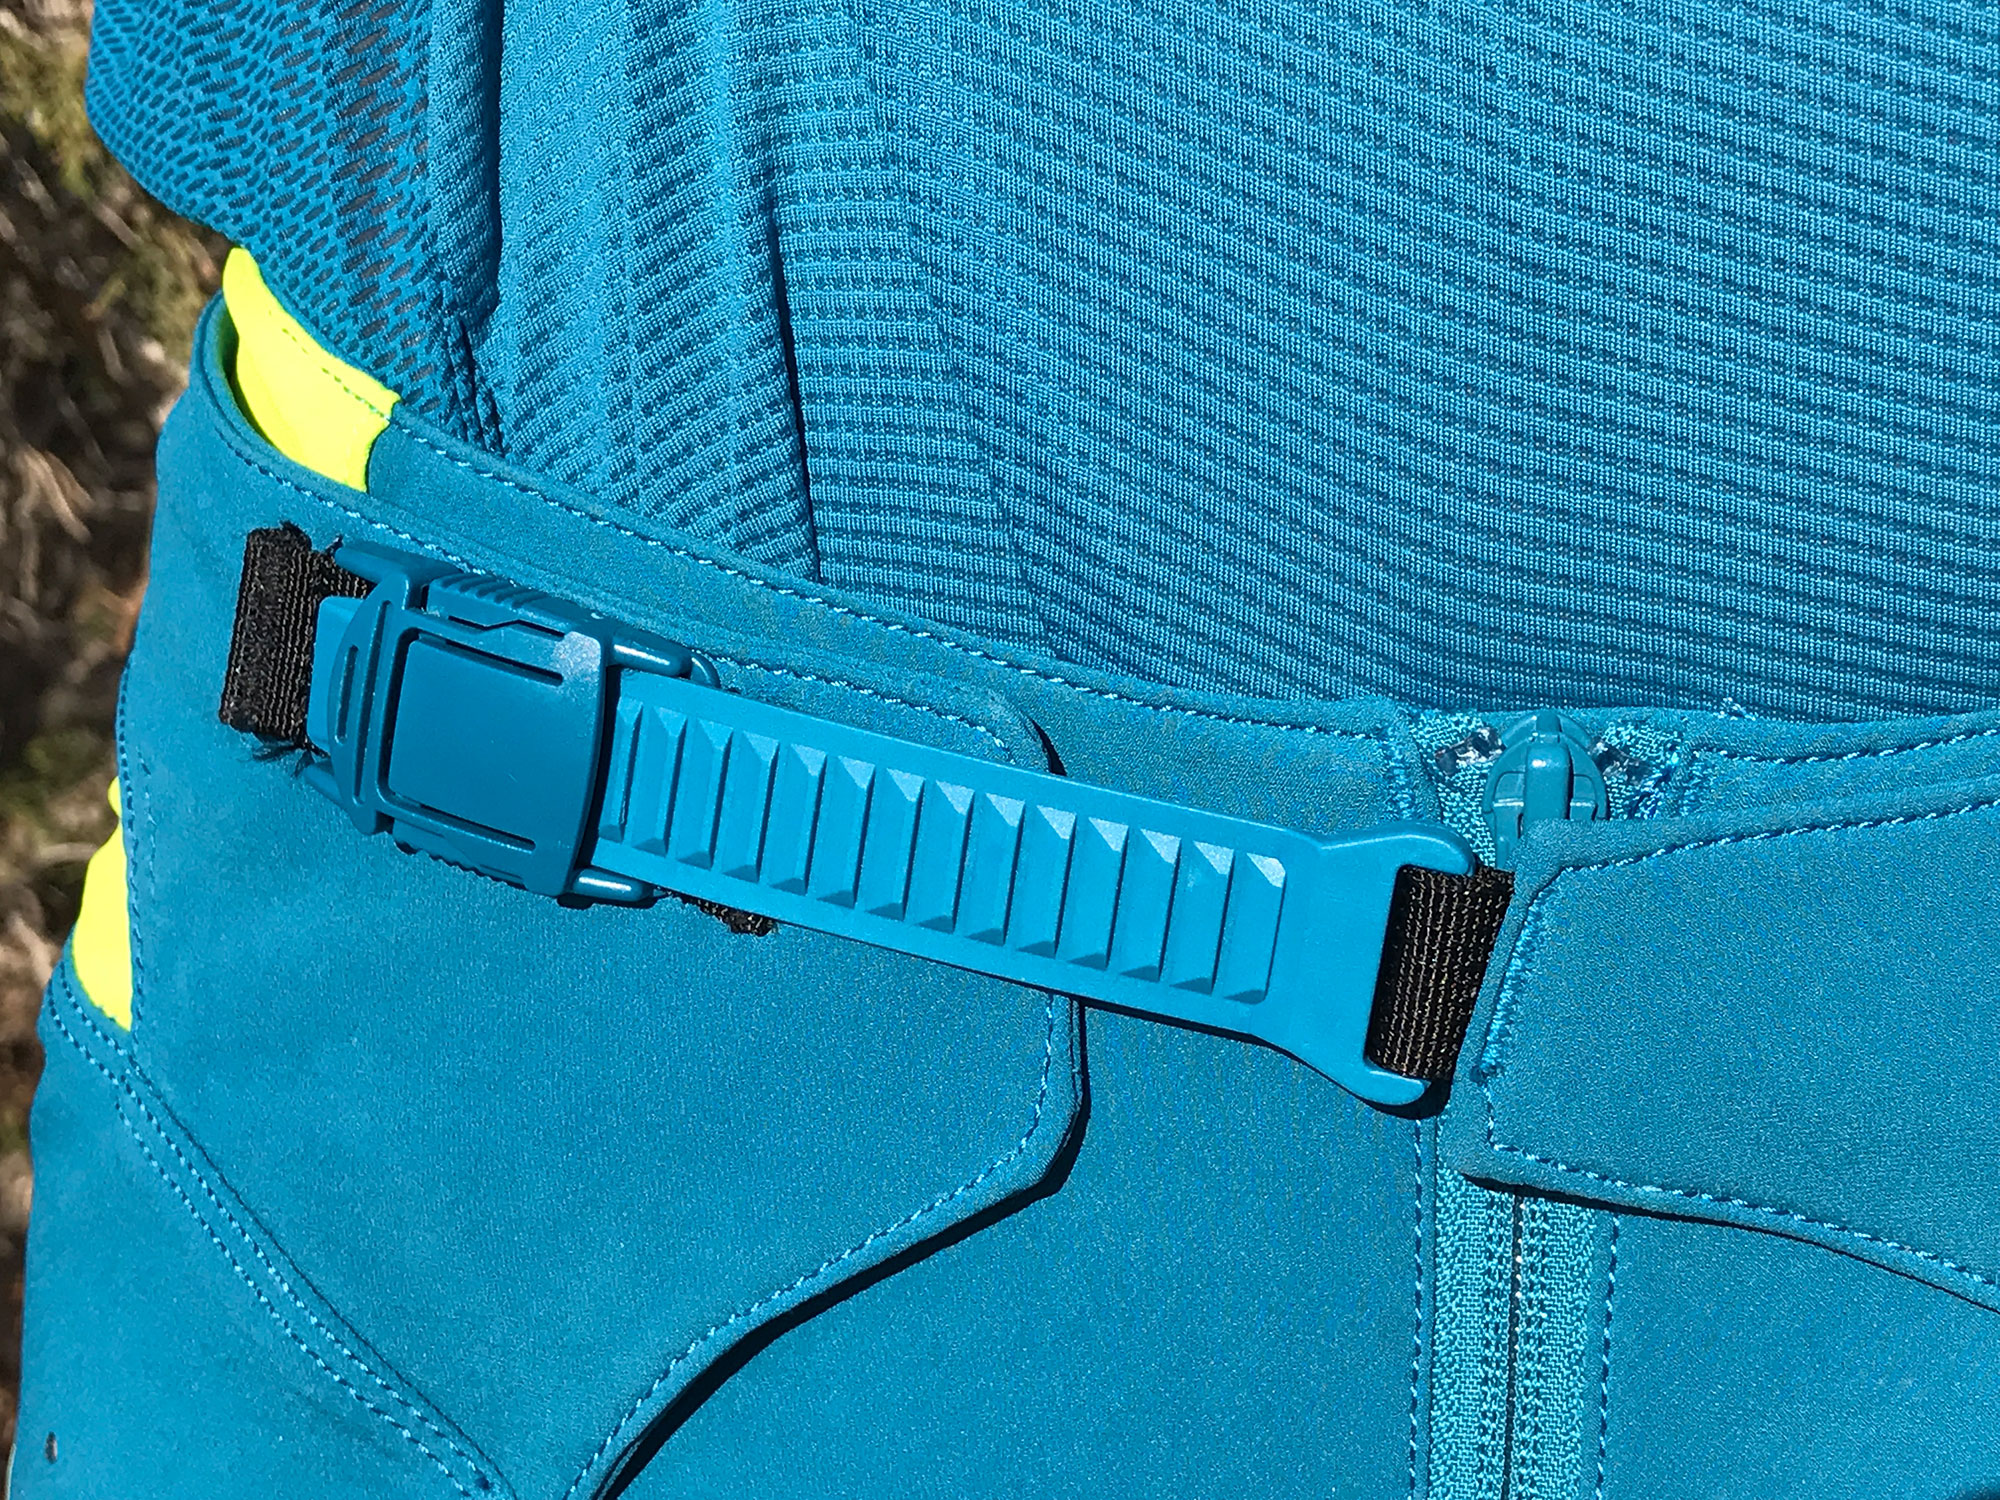 The new closure system on the 2.0 FlexAir pant molds the pant to your waist while maintaining flexibility on the bike.